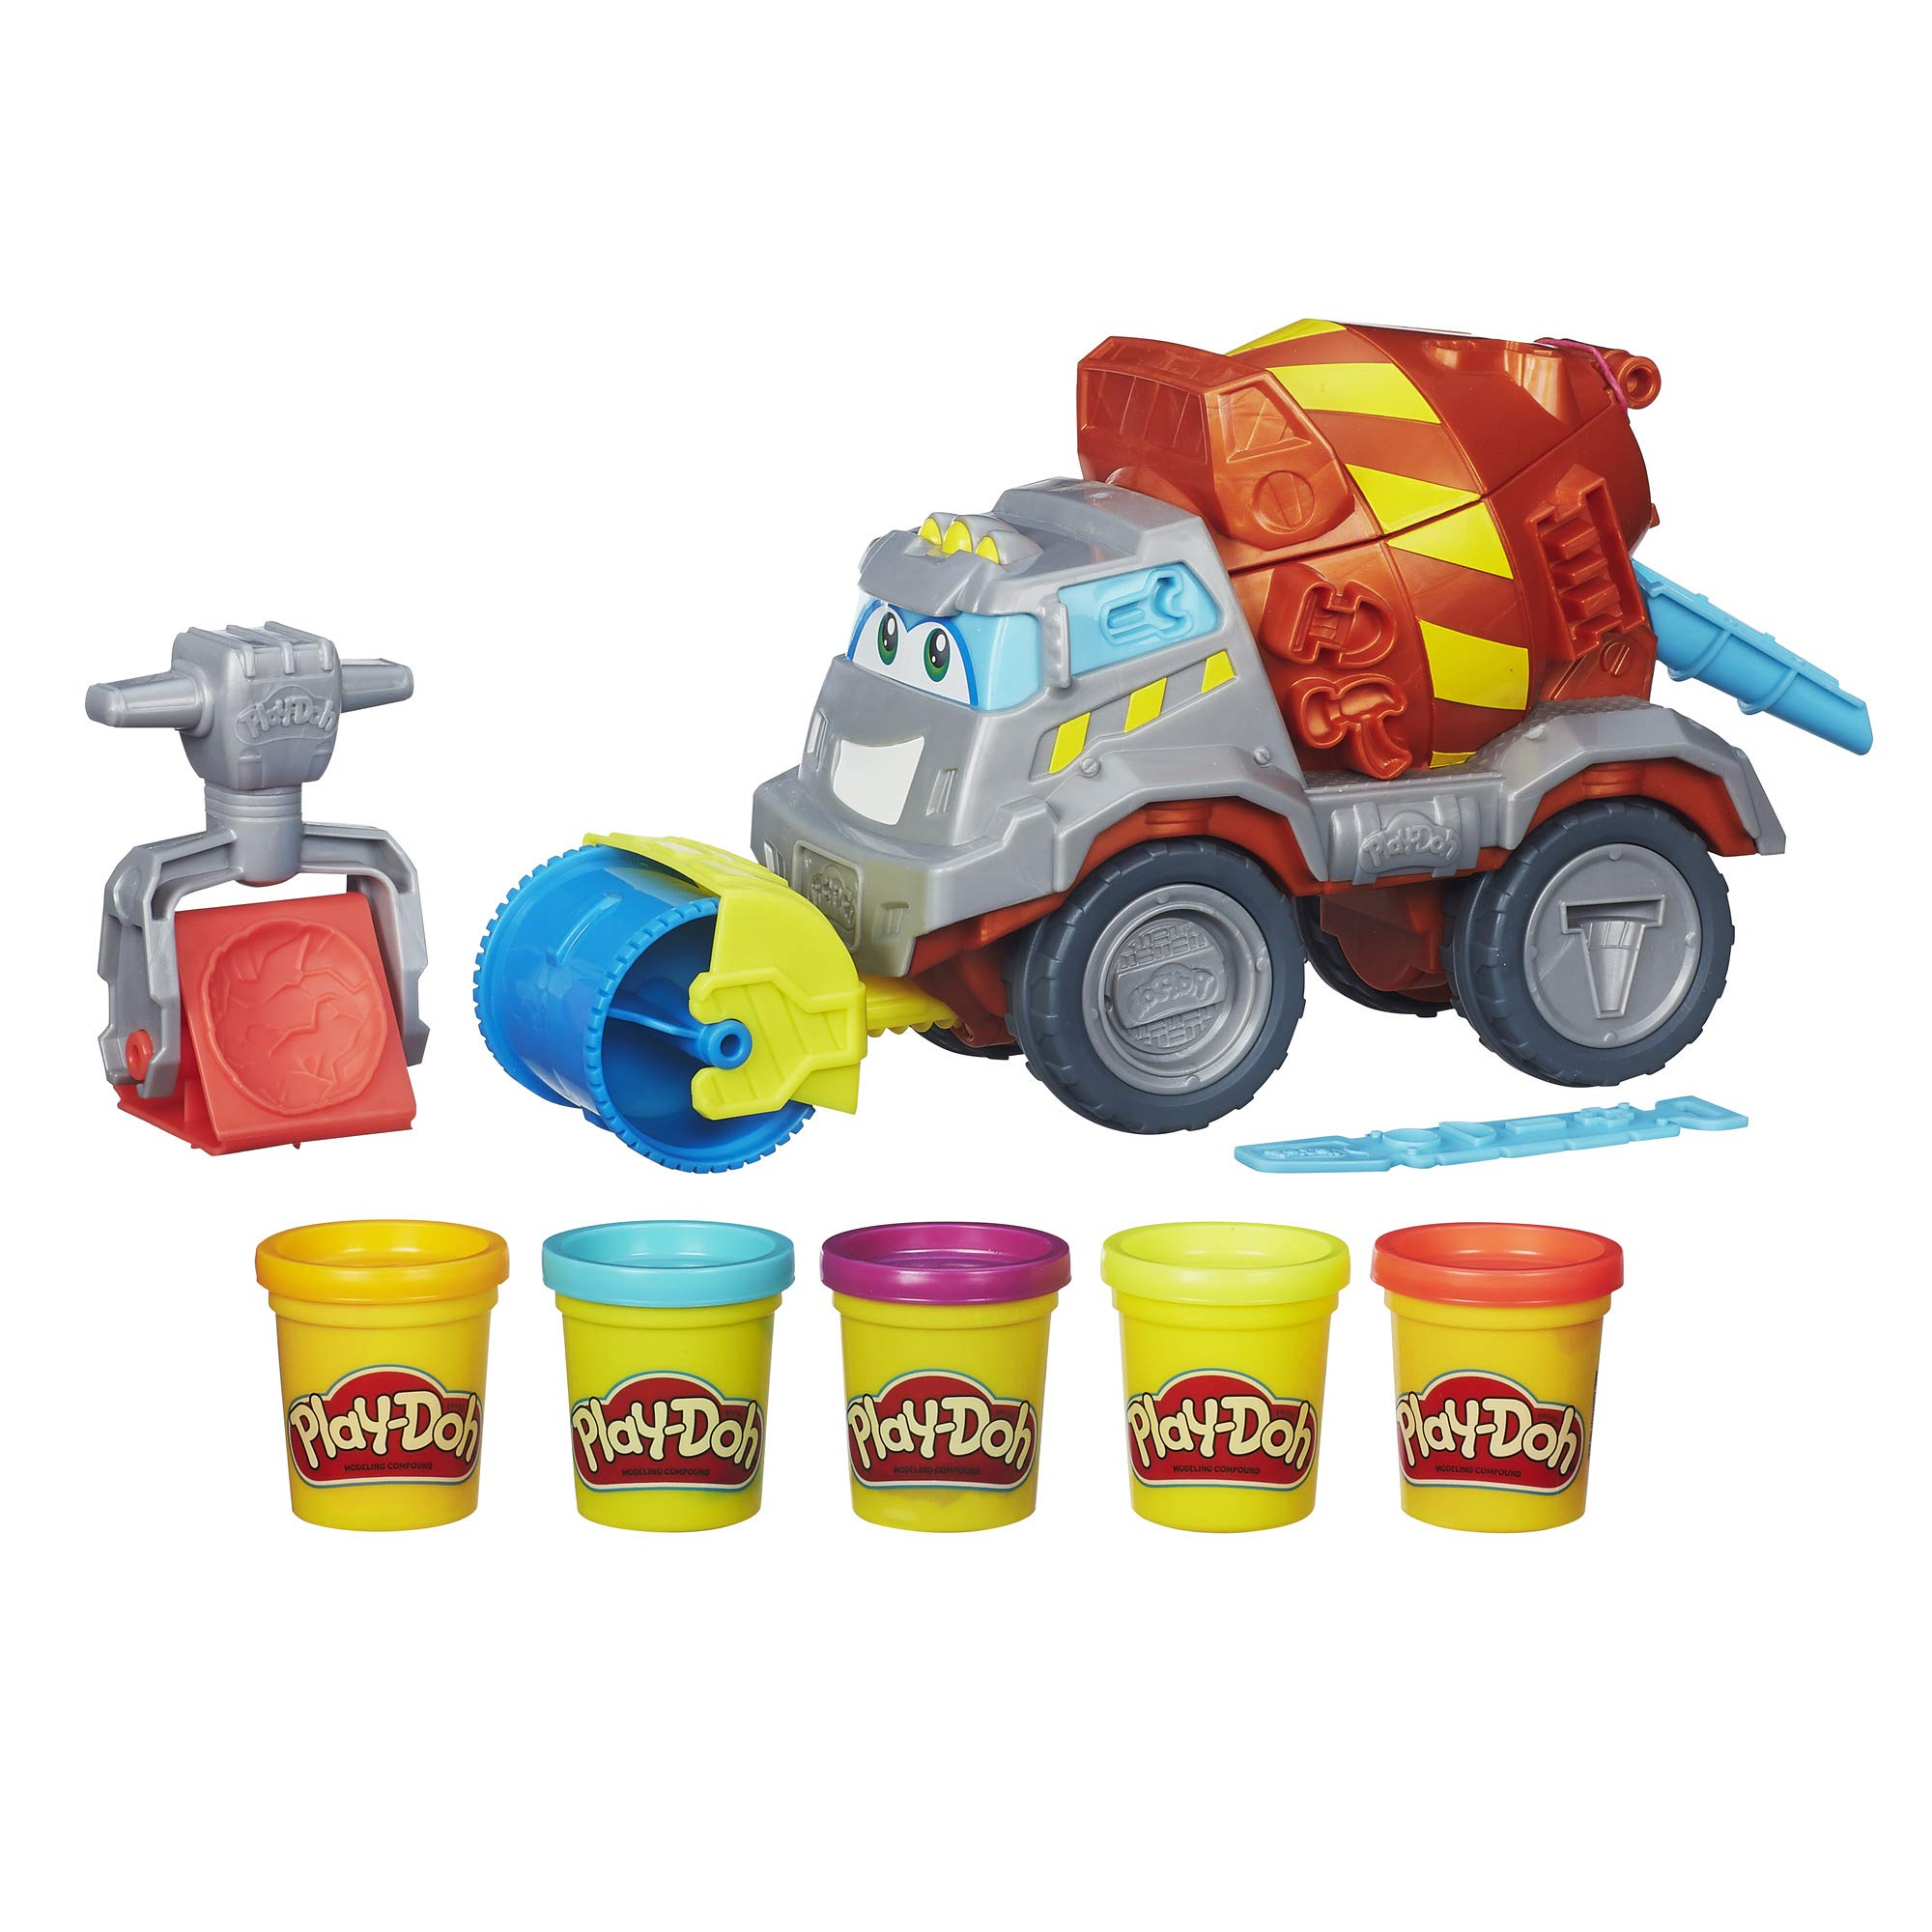 Play-Doh Max The Cement Mixer Toy Construction Truck with 5 Non-Toxic Colors, 2-Ounce Cans (Amazon Exclusive) by Play-Doh